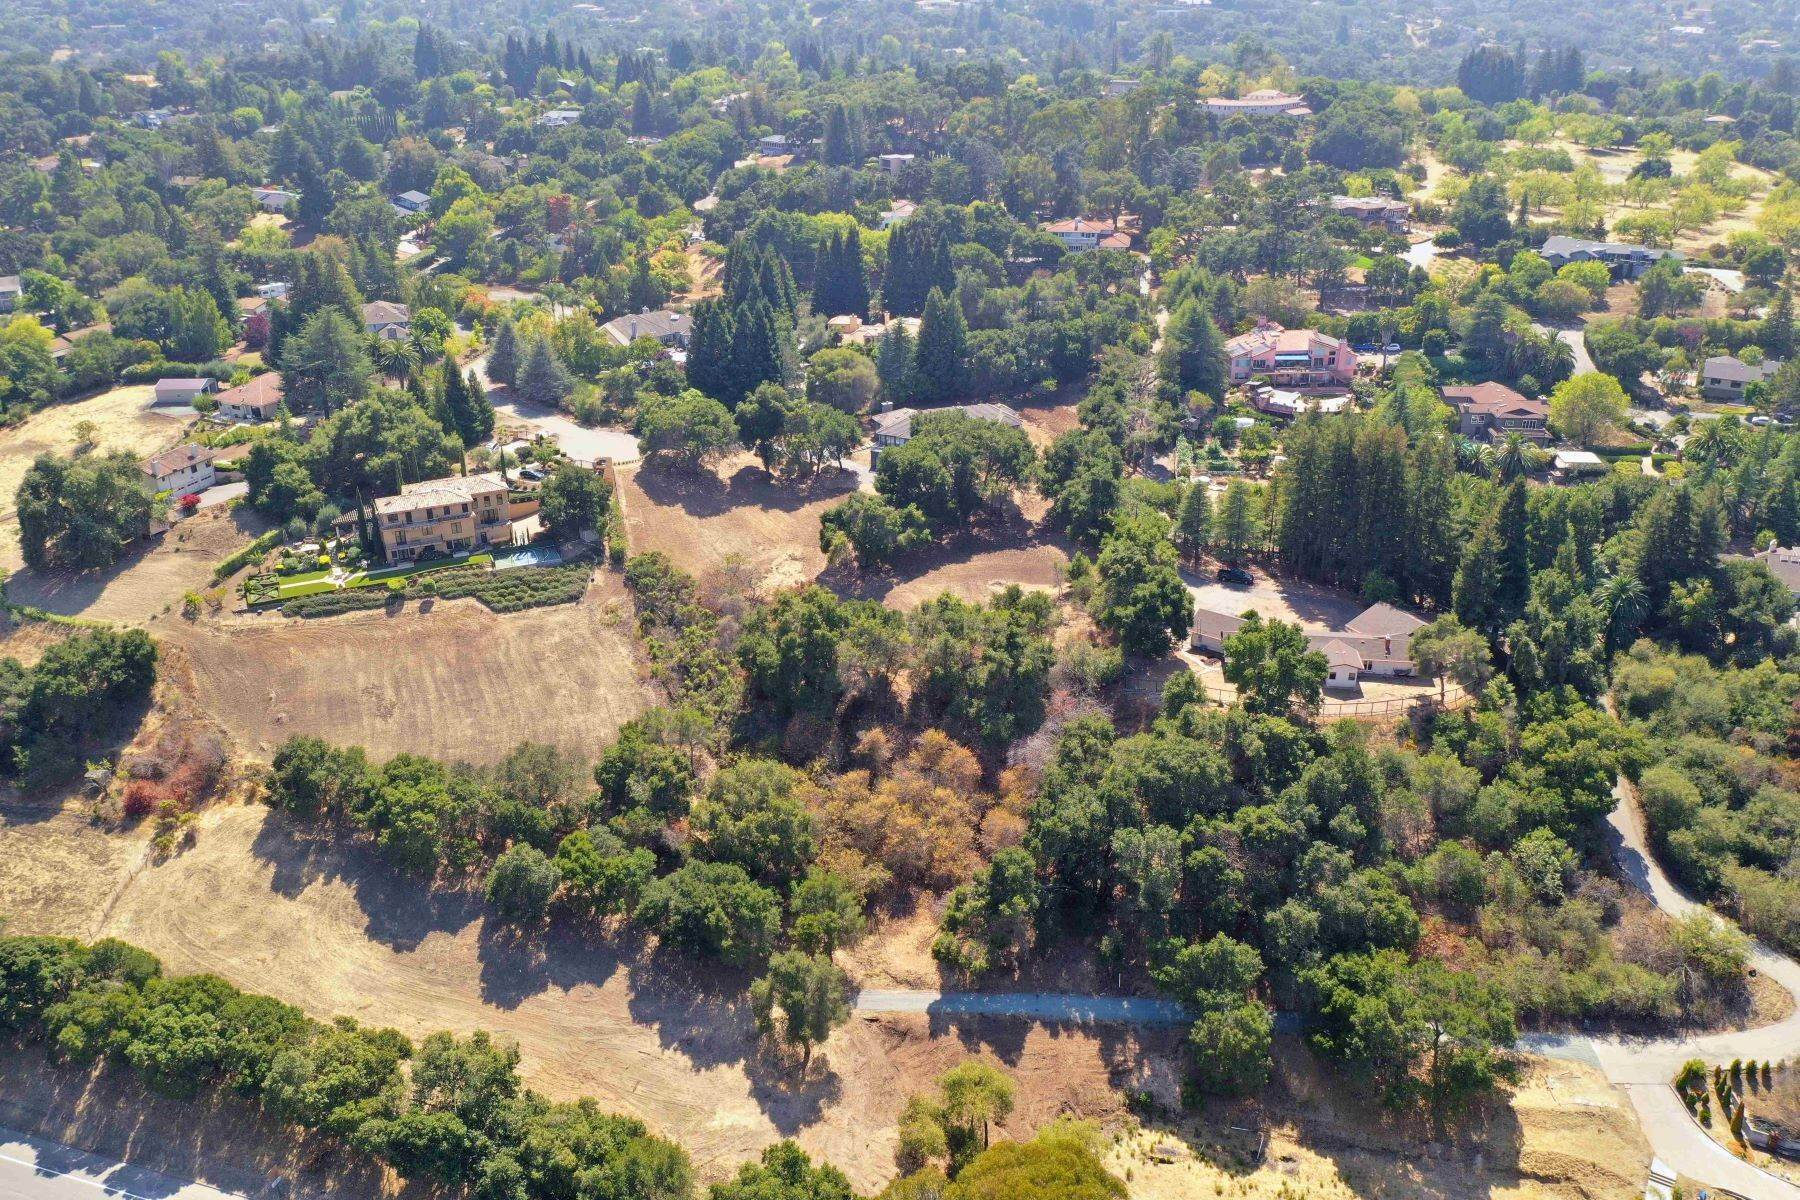 Property for Sale at 27360 Elena Road Los Altos Hills, California 94022 United States